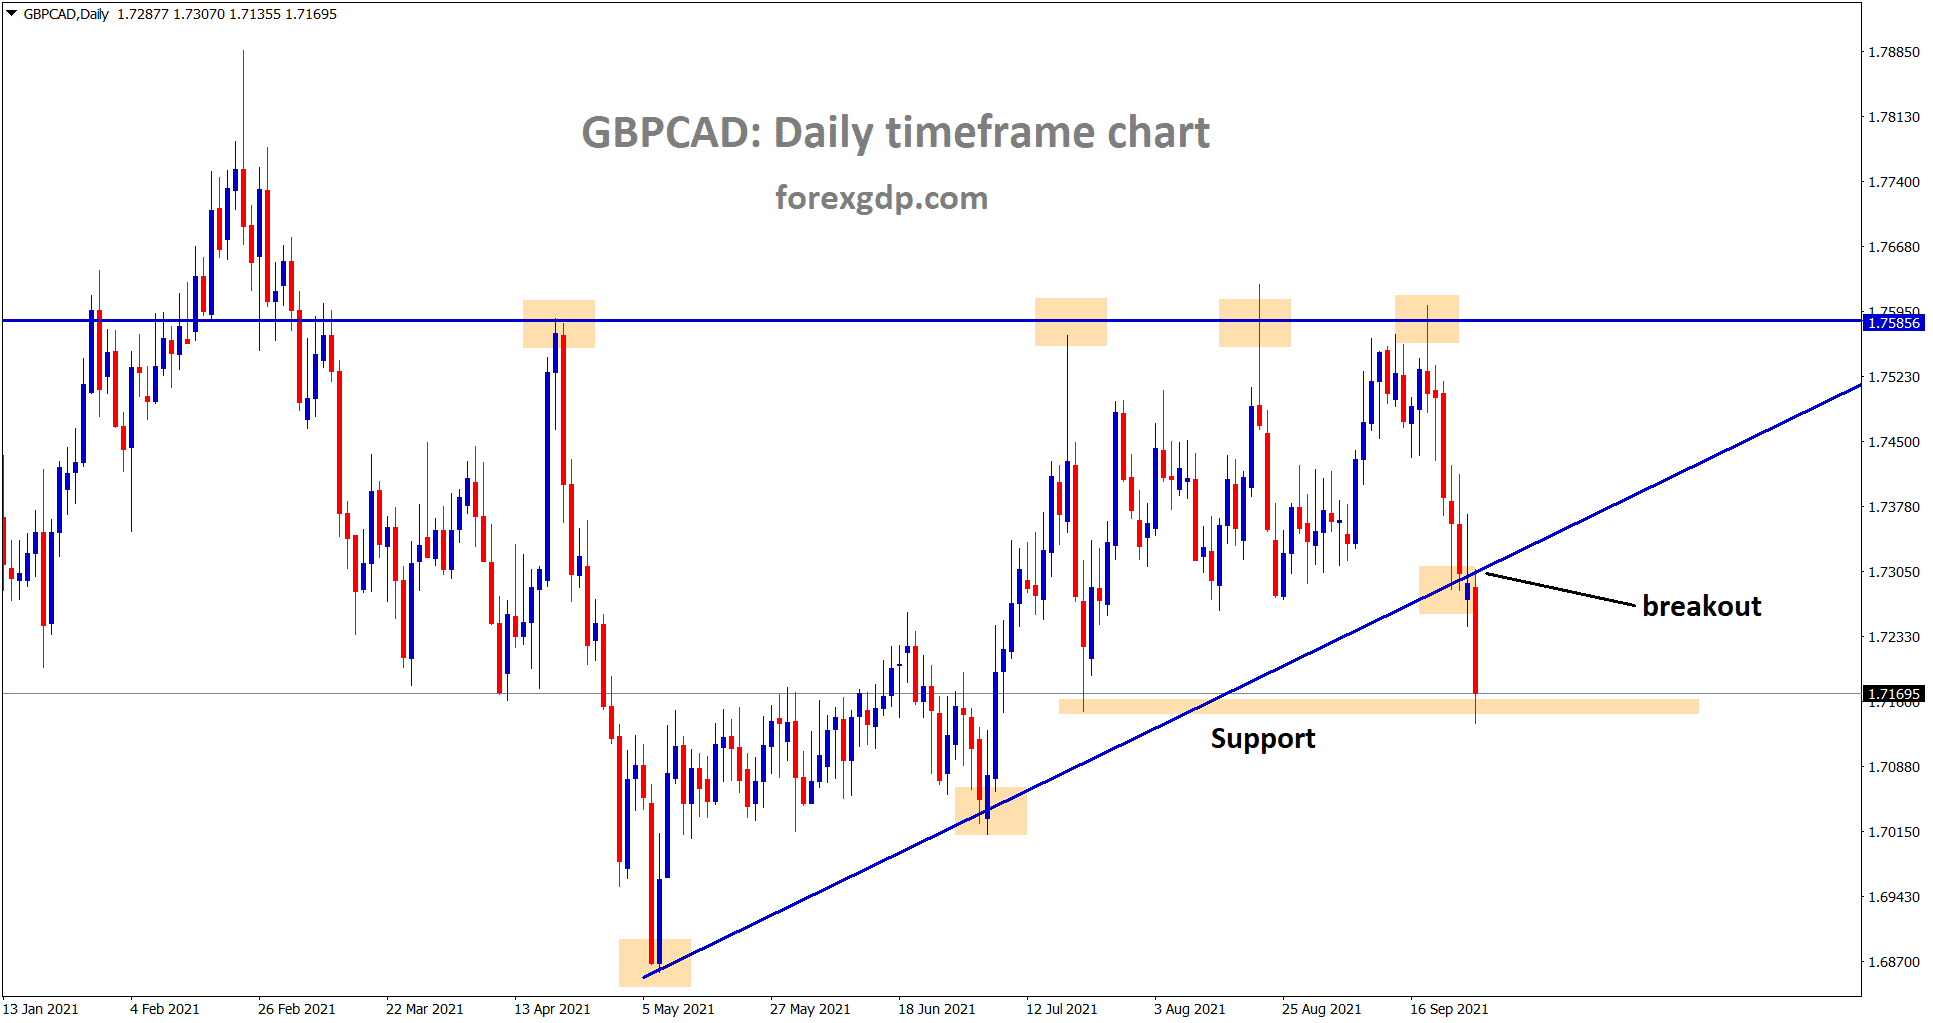 GBPCAD has broken the ascending triangle low and reached the horizontal support area